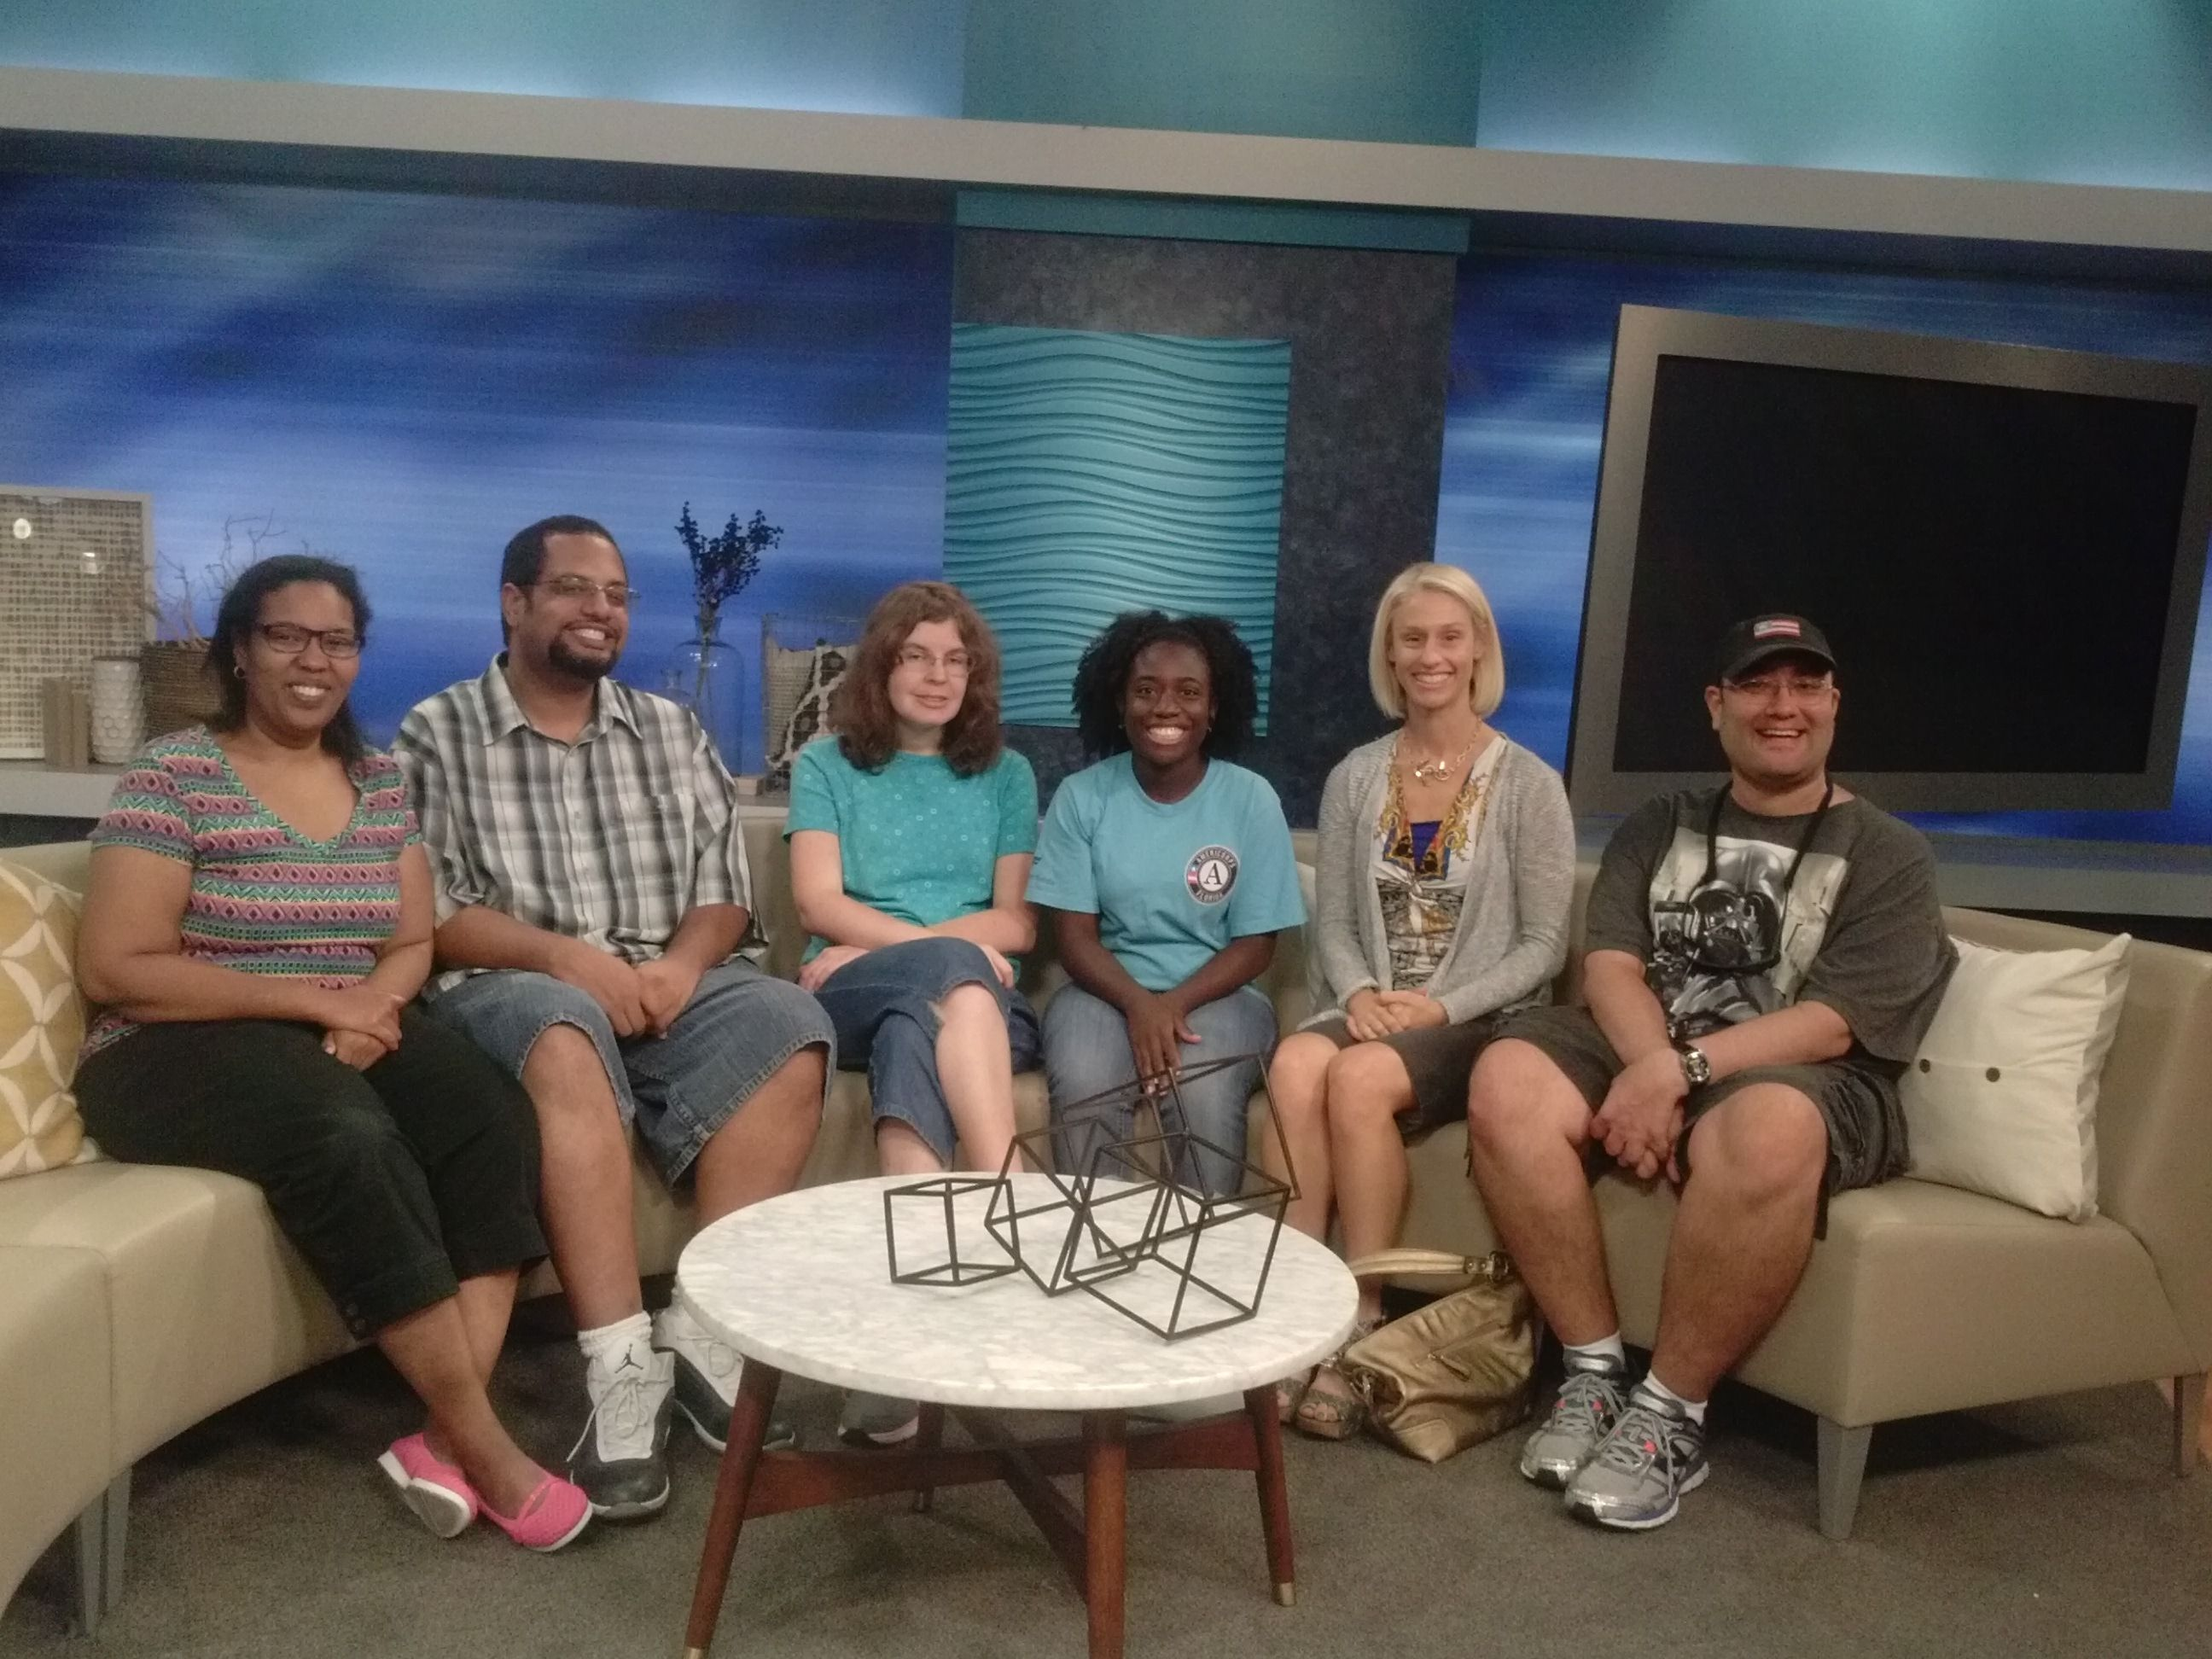 The Xperience program visits Channel 4 news station